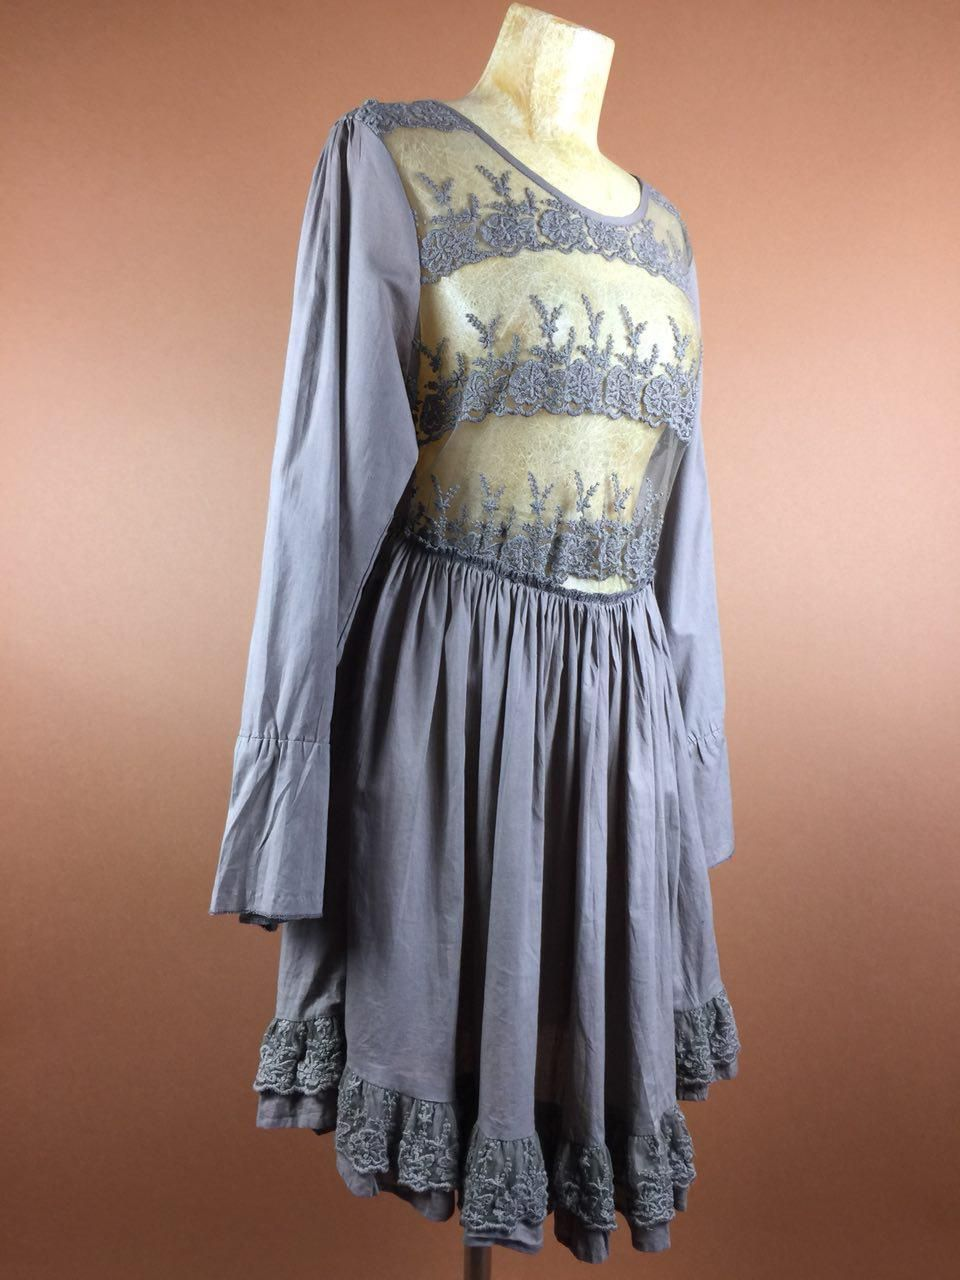 Lace dress gray  s Lace Dress Grey Brown Pleated XSS Festival Elastic Waist